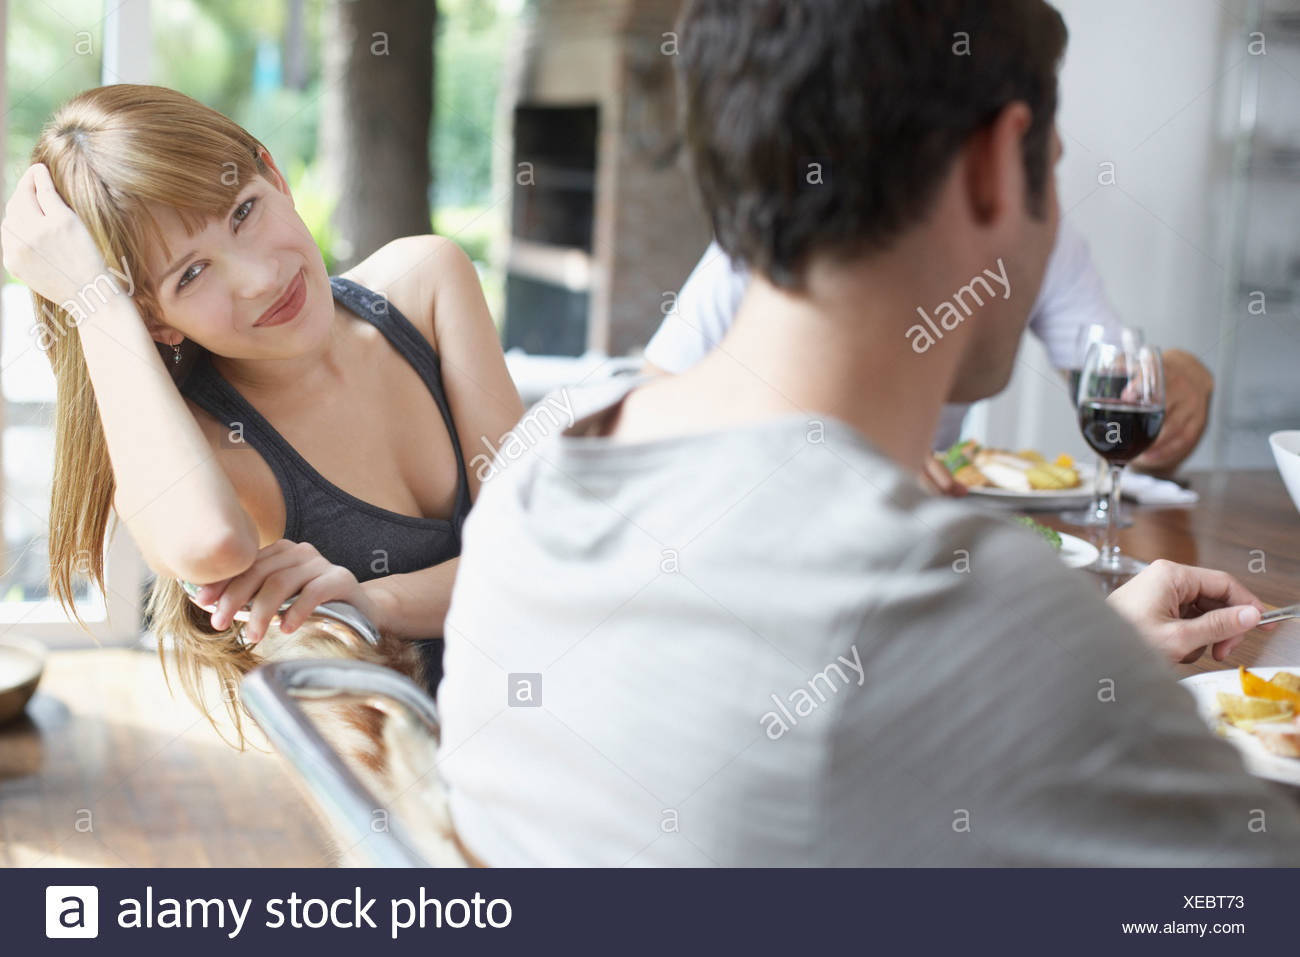 three people at dinner table focussing on one woman smiling - Stock Image